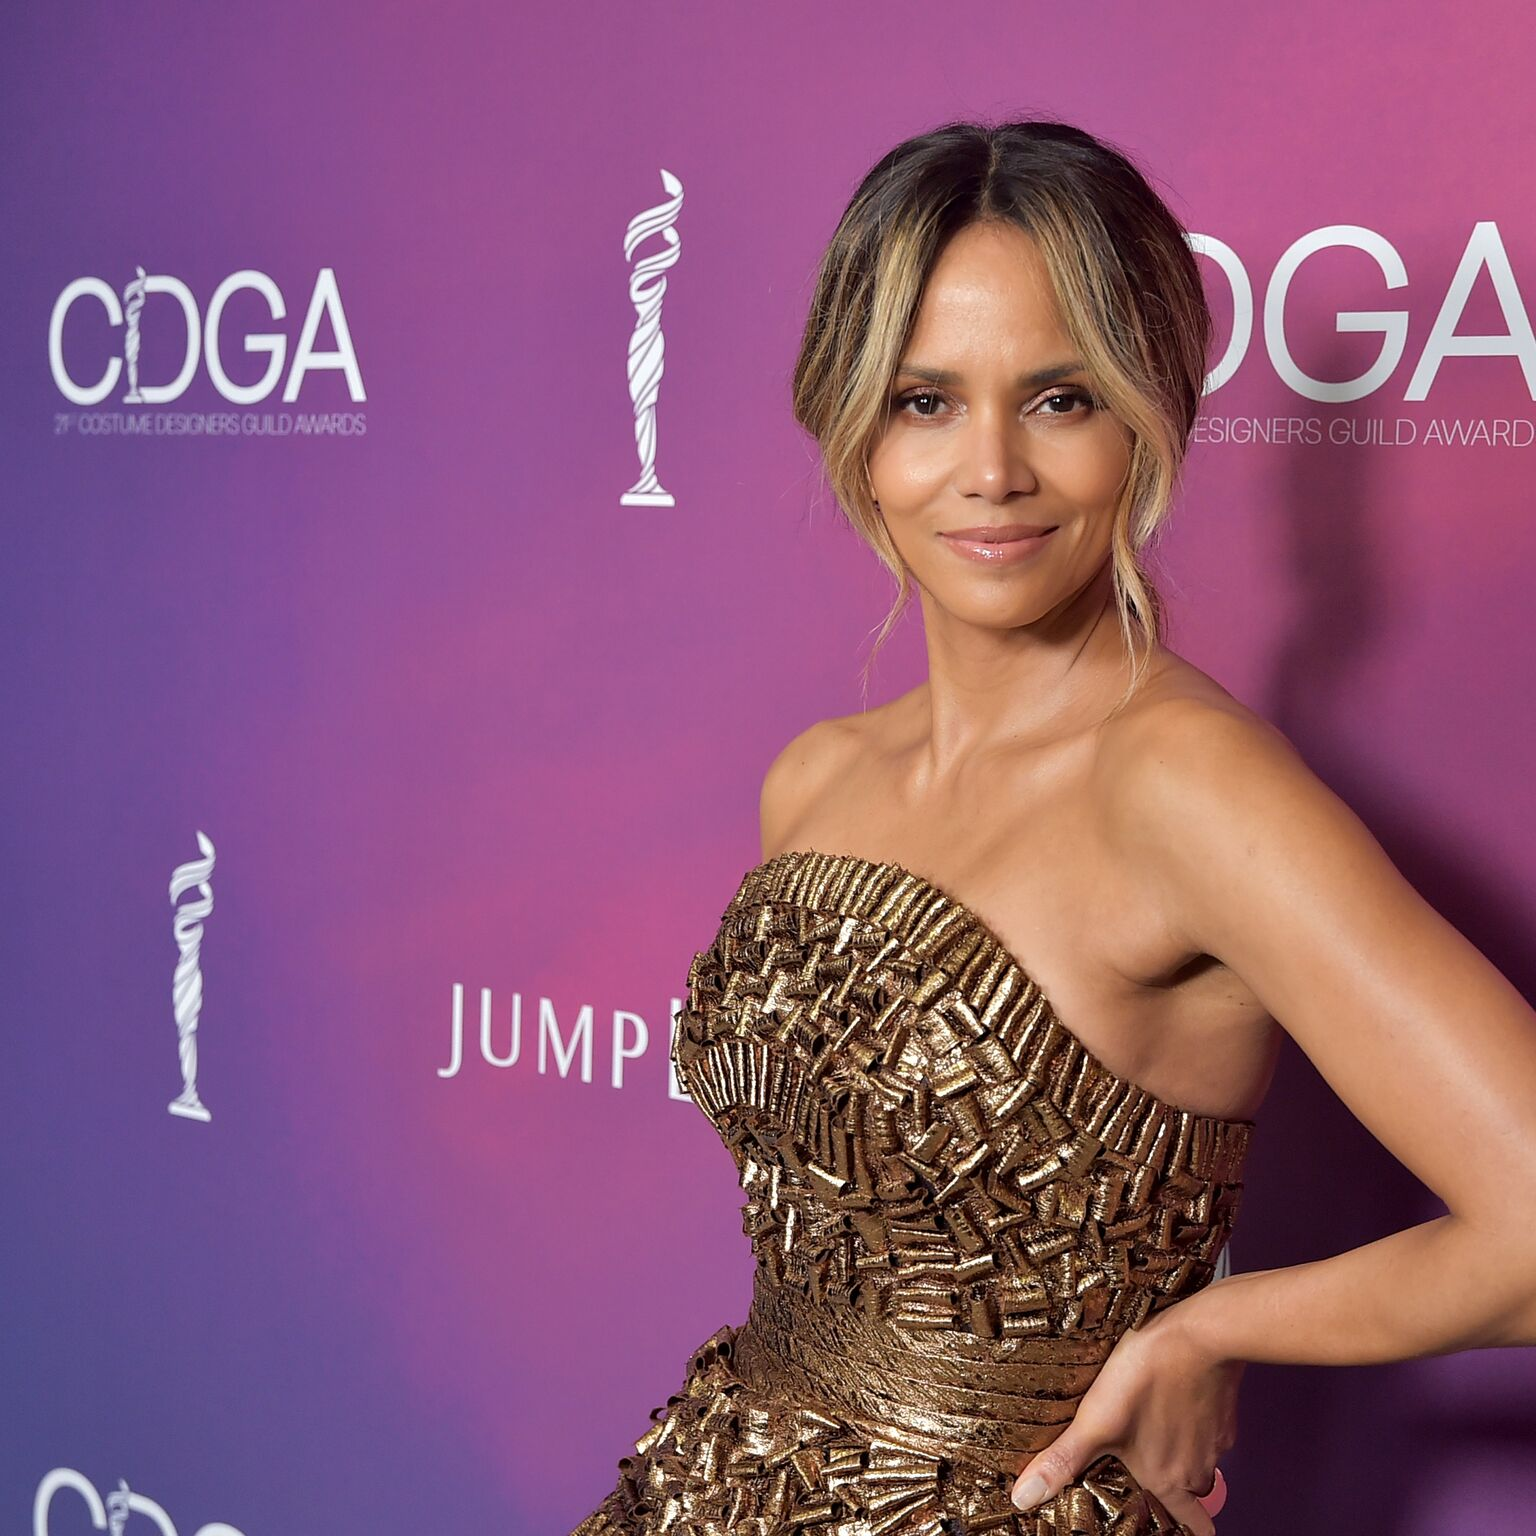 Halle Berry attends The 21st CDGA (Costume Designers Guild Awards) at The Beverly Hilton Hotel  | Getty Images